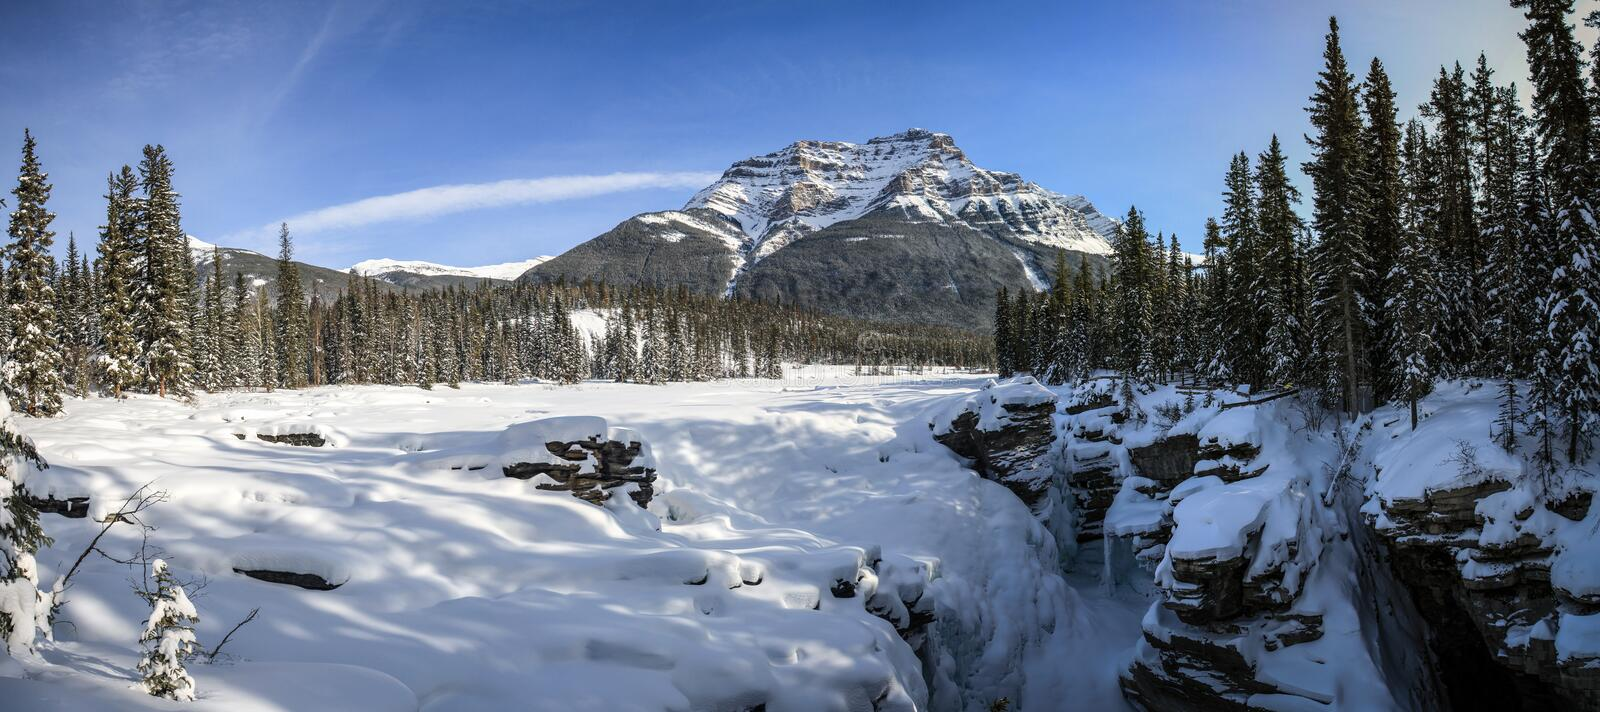 Panorama on frosty and snowy Athabasca Falls, Jasper, Alberta, Canada royalty free stock photo